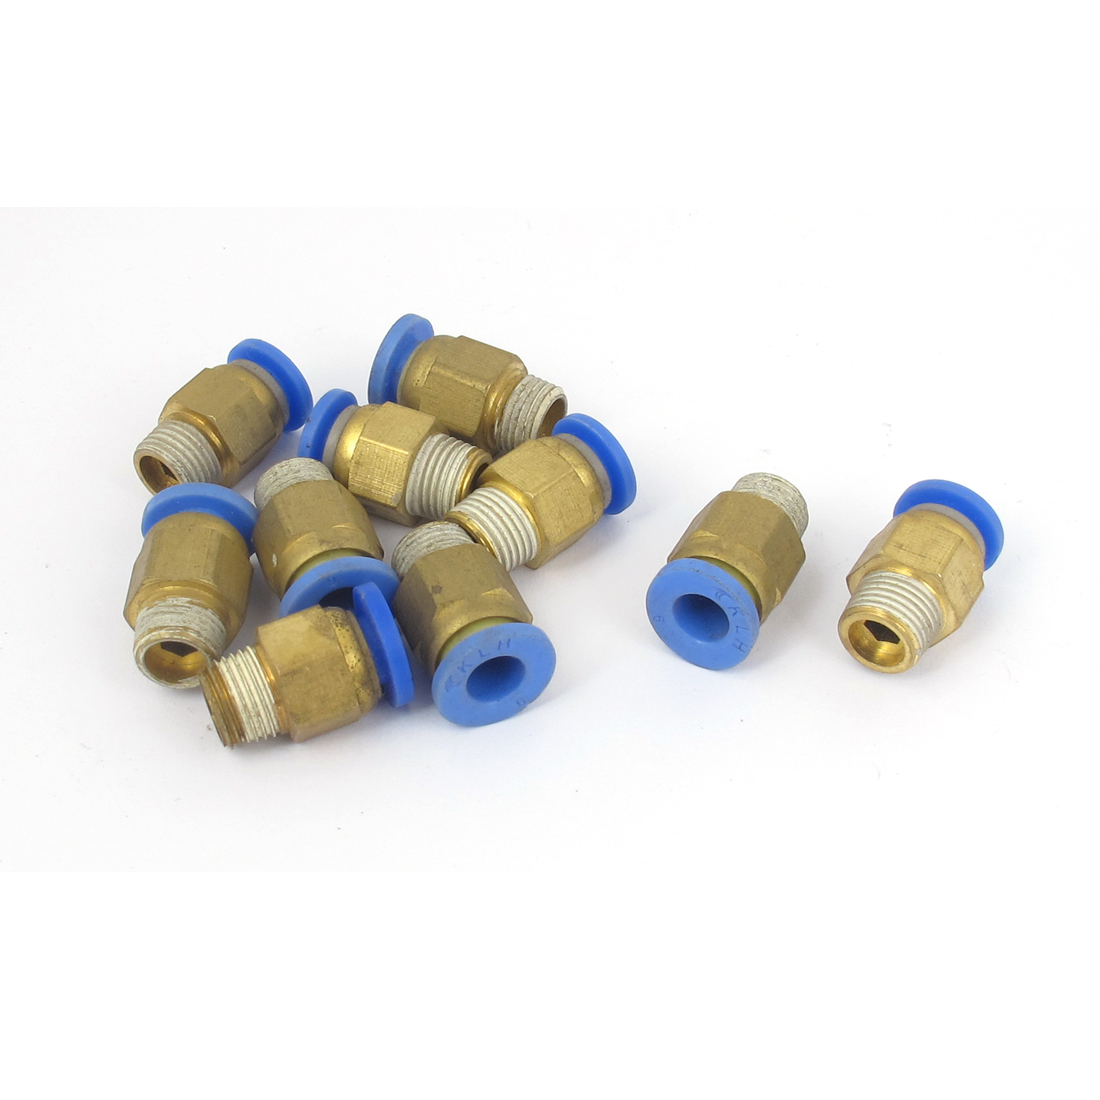 Pneumatic One Touch Push in Joint Fittings 6mm 10 Pcs